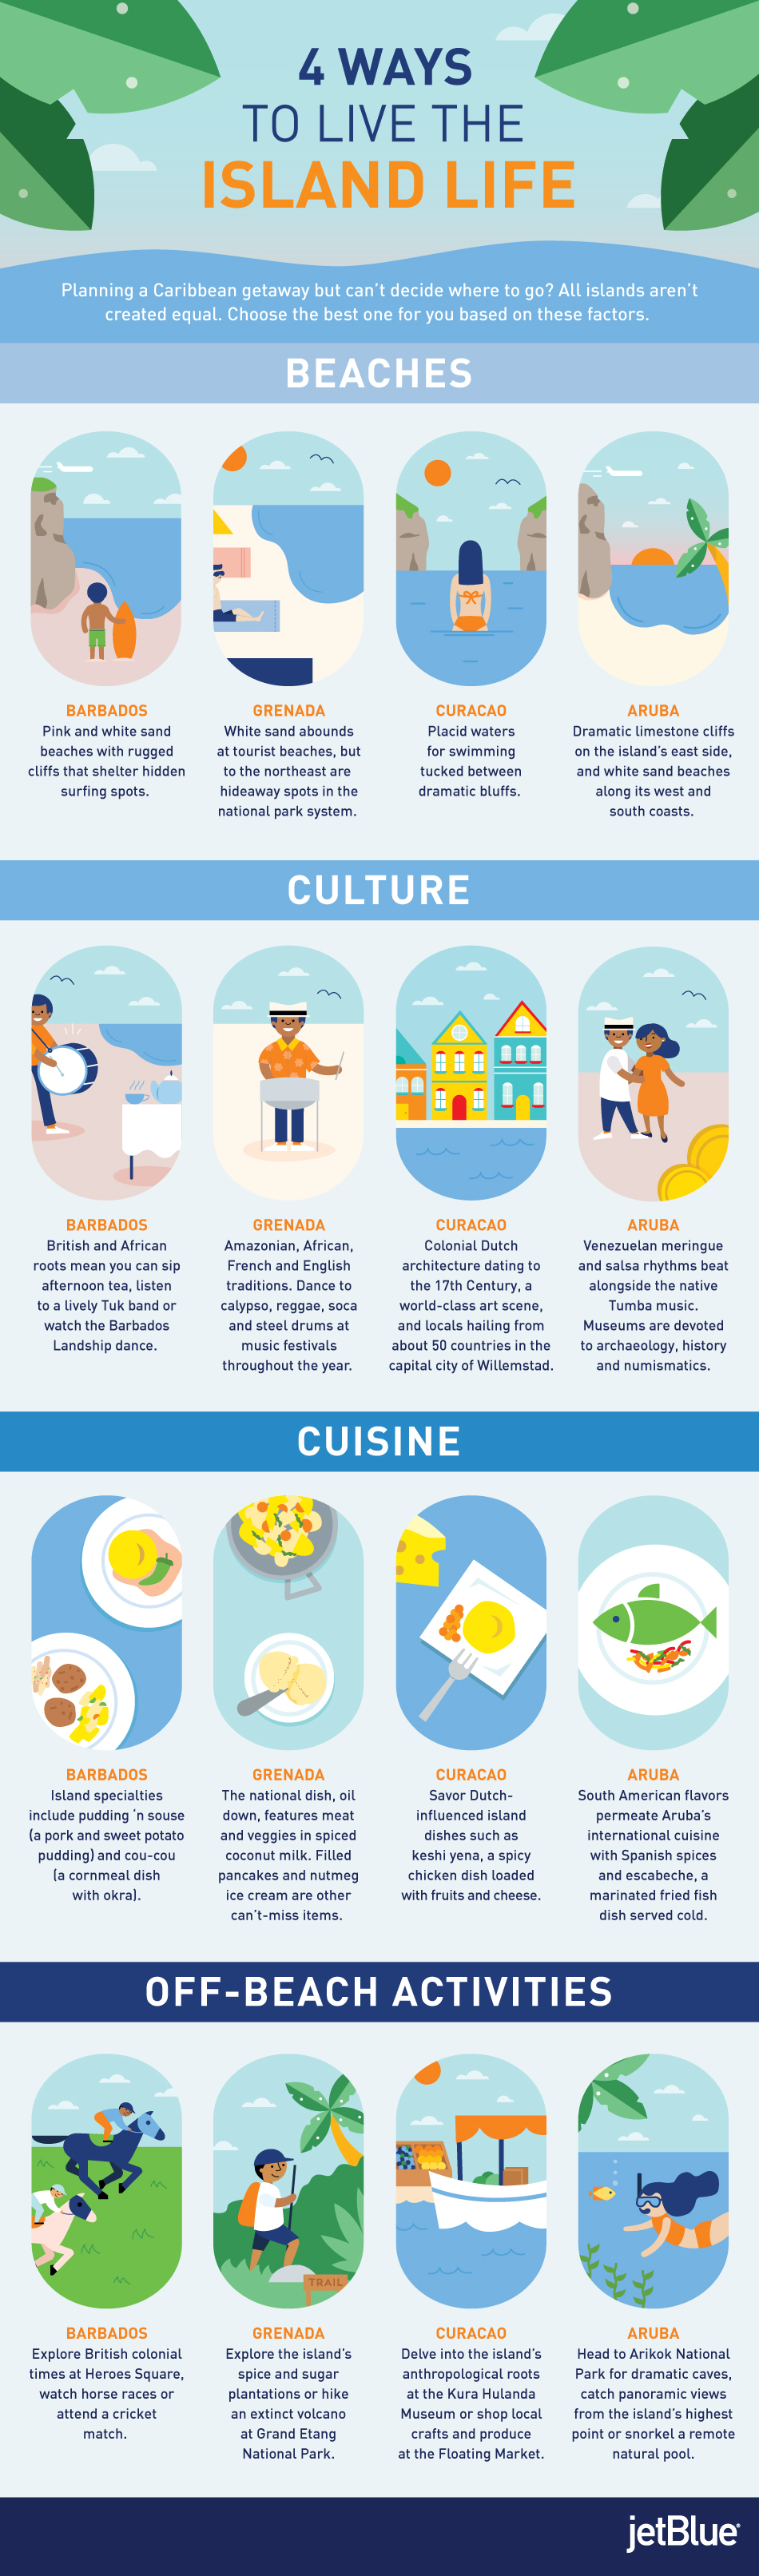 jetBlue - 4 Ways to Live the Island Life